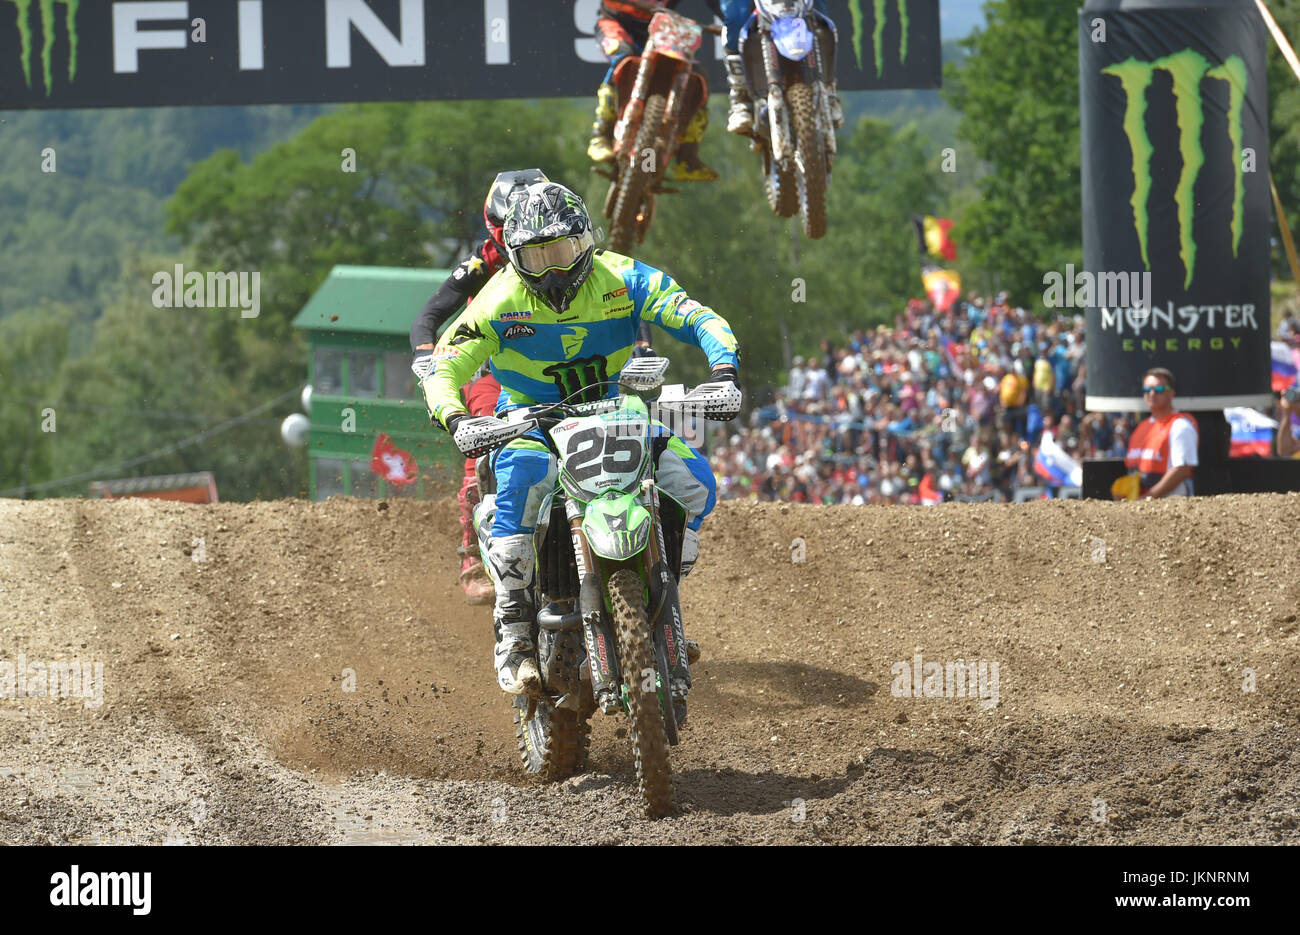 Clement Desalle (Belgium) races during the Grand Prix Czech Republic within Motocross World Championship in Loket, Stock Photo